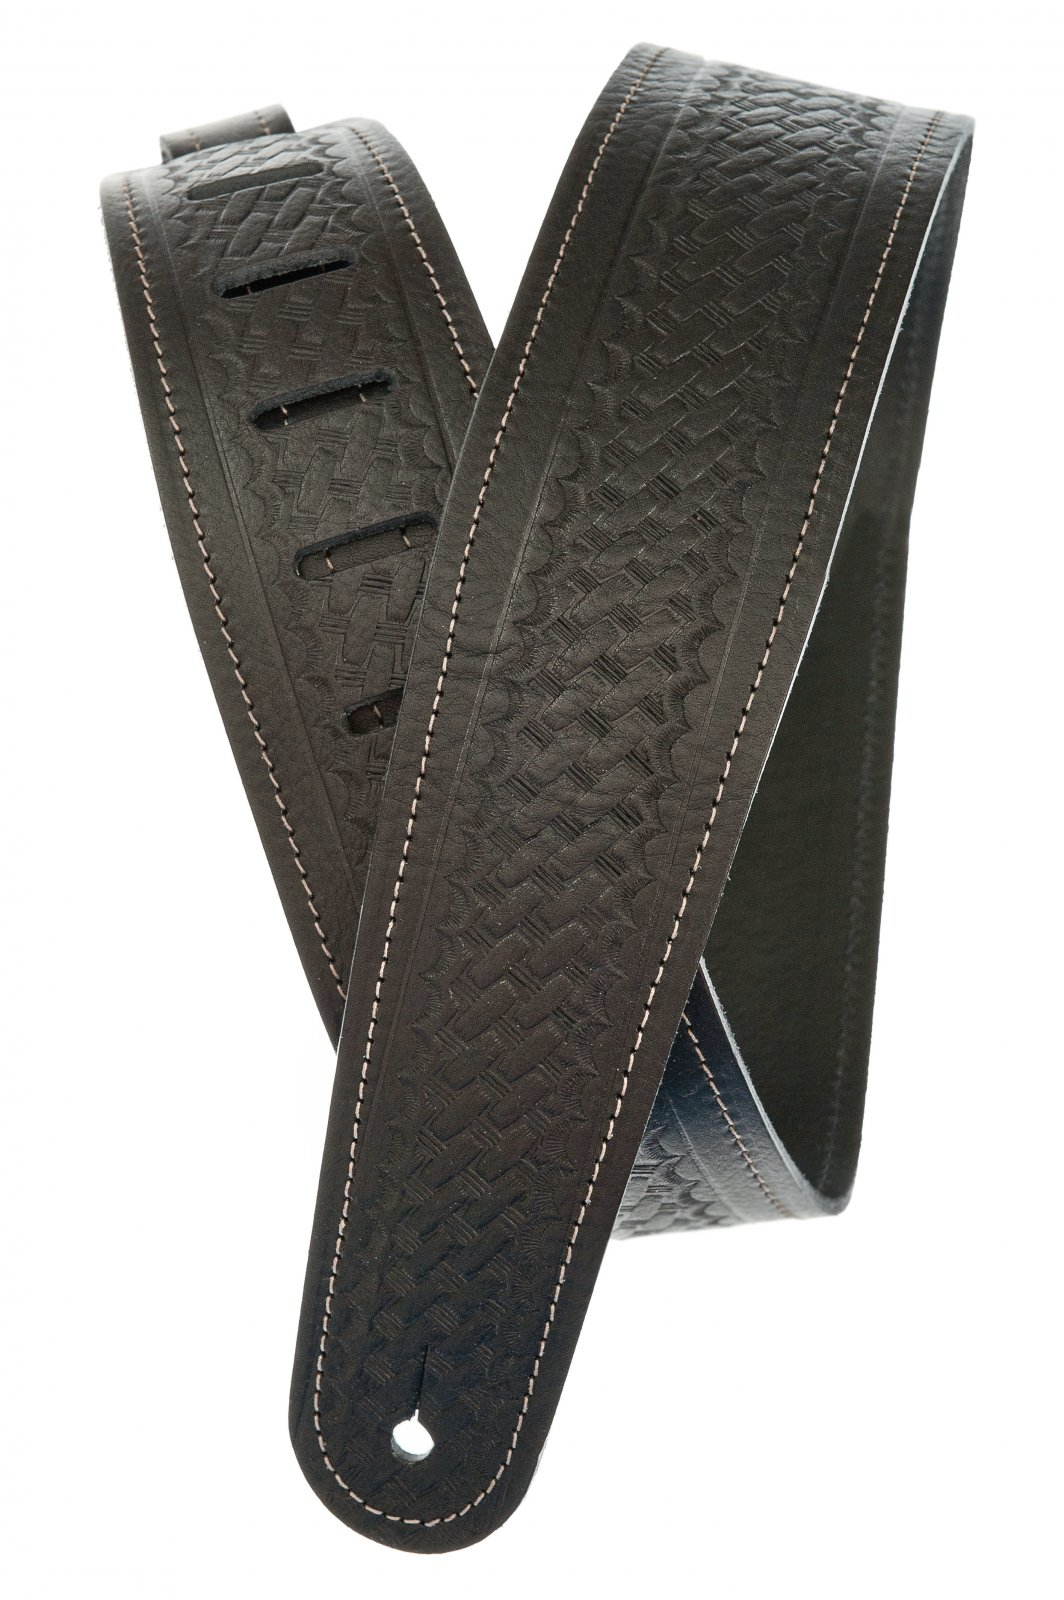 D'Addario/Planet Waves Basket Weave Embossed Leather Guitar Strap Black 25WSTB00